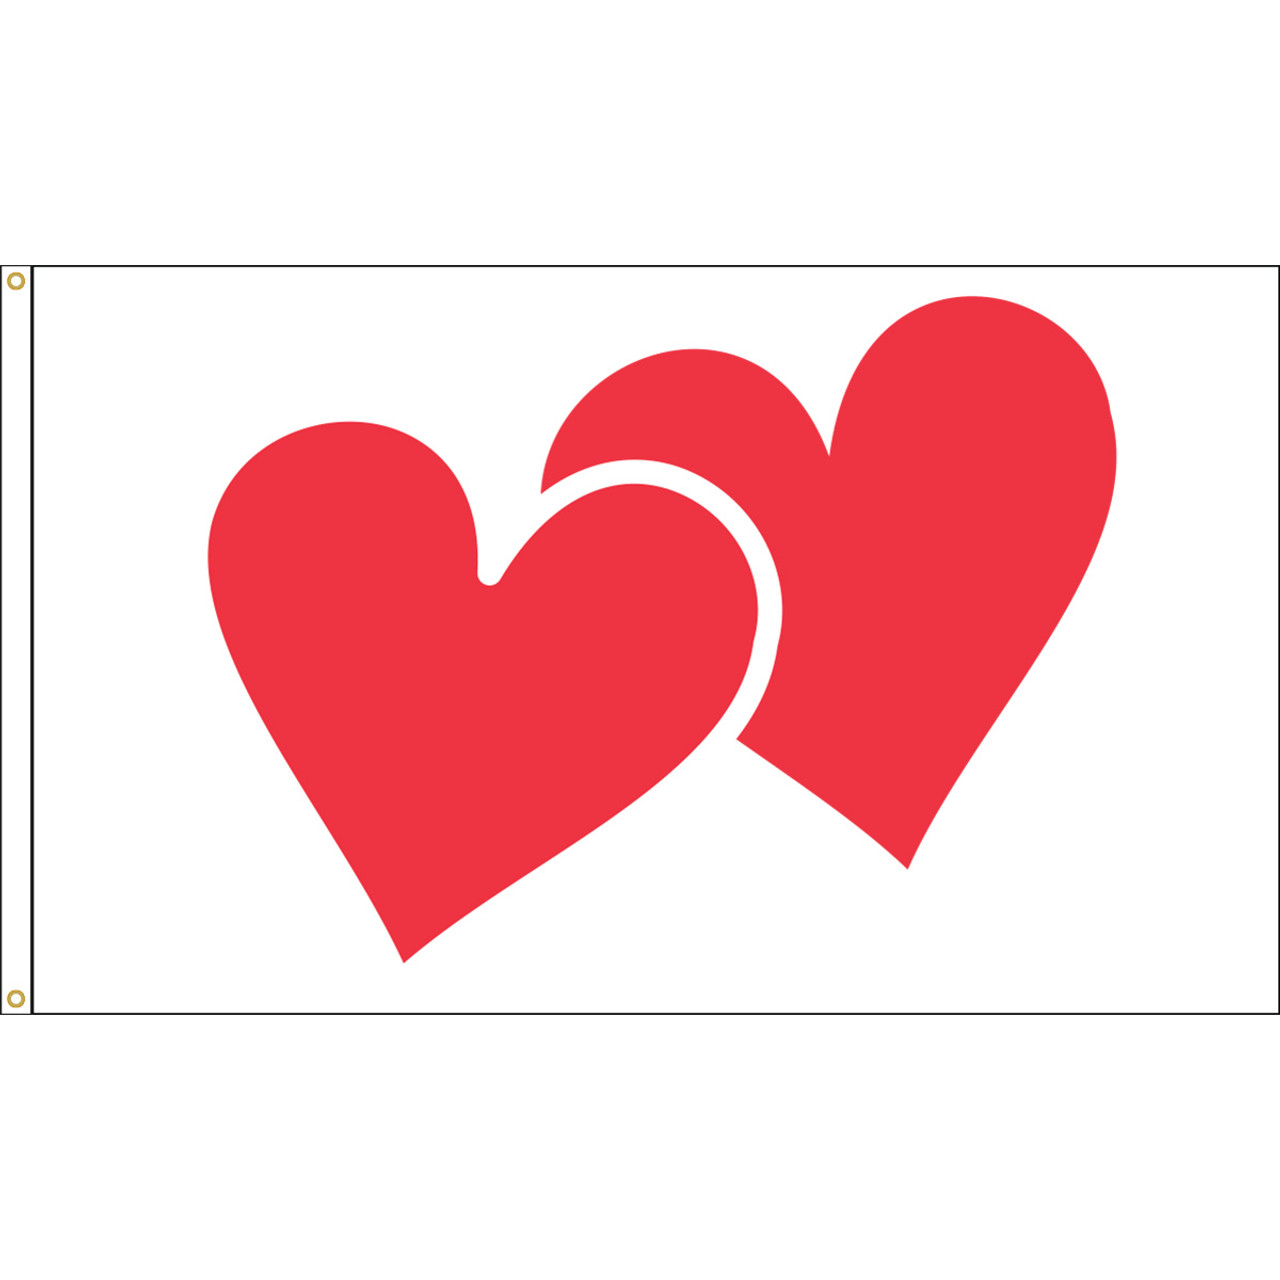 Valentine Hearts Flag, 3' x 5' Nylon with Header and Grommets